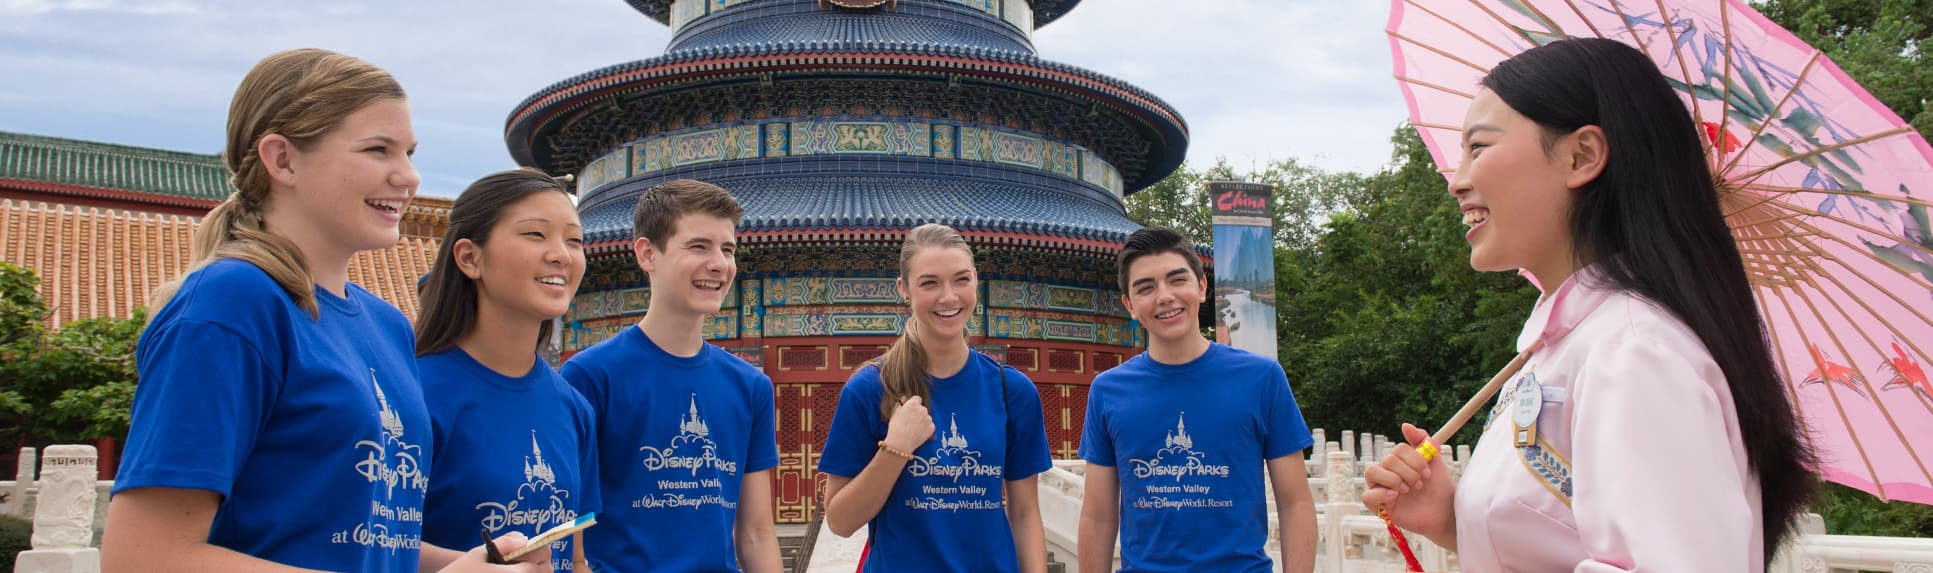 5 students with a woman dressed in traditional garb in front of the China Pavilion at Epcot